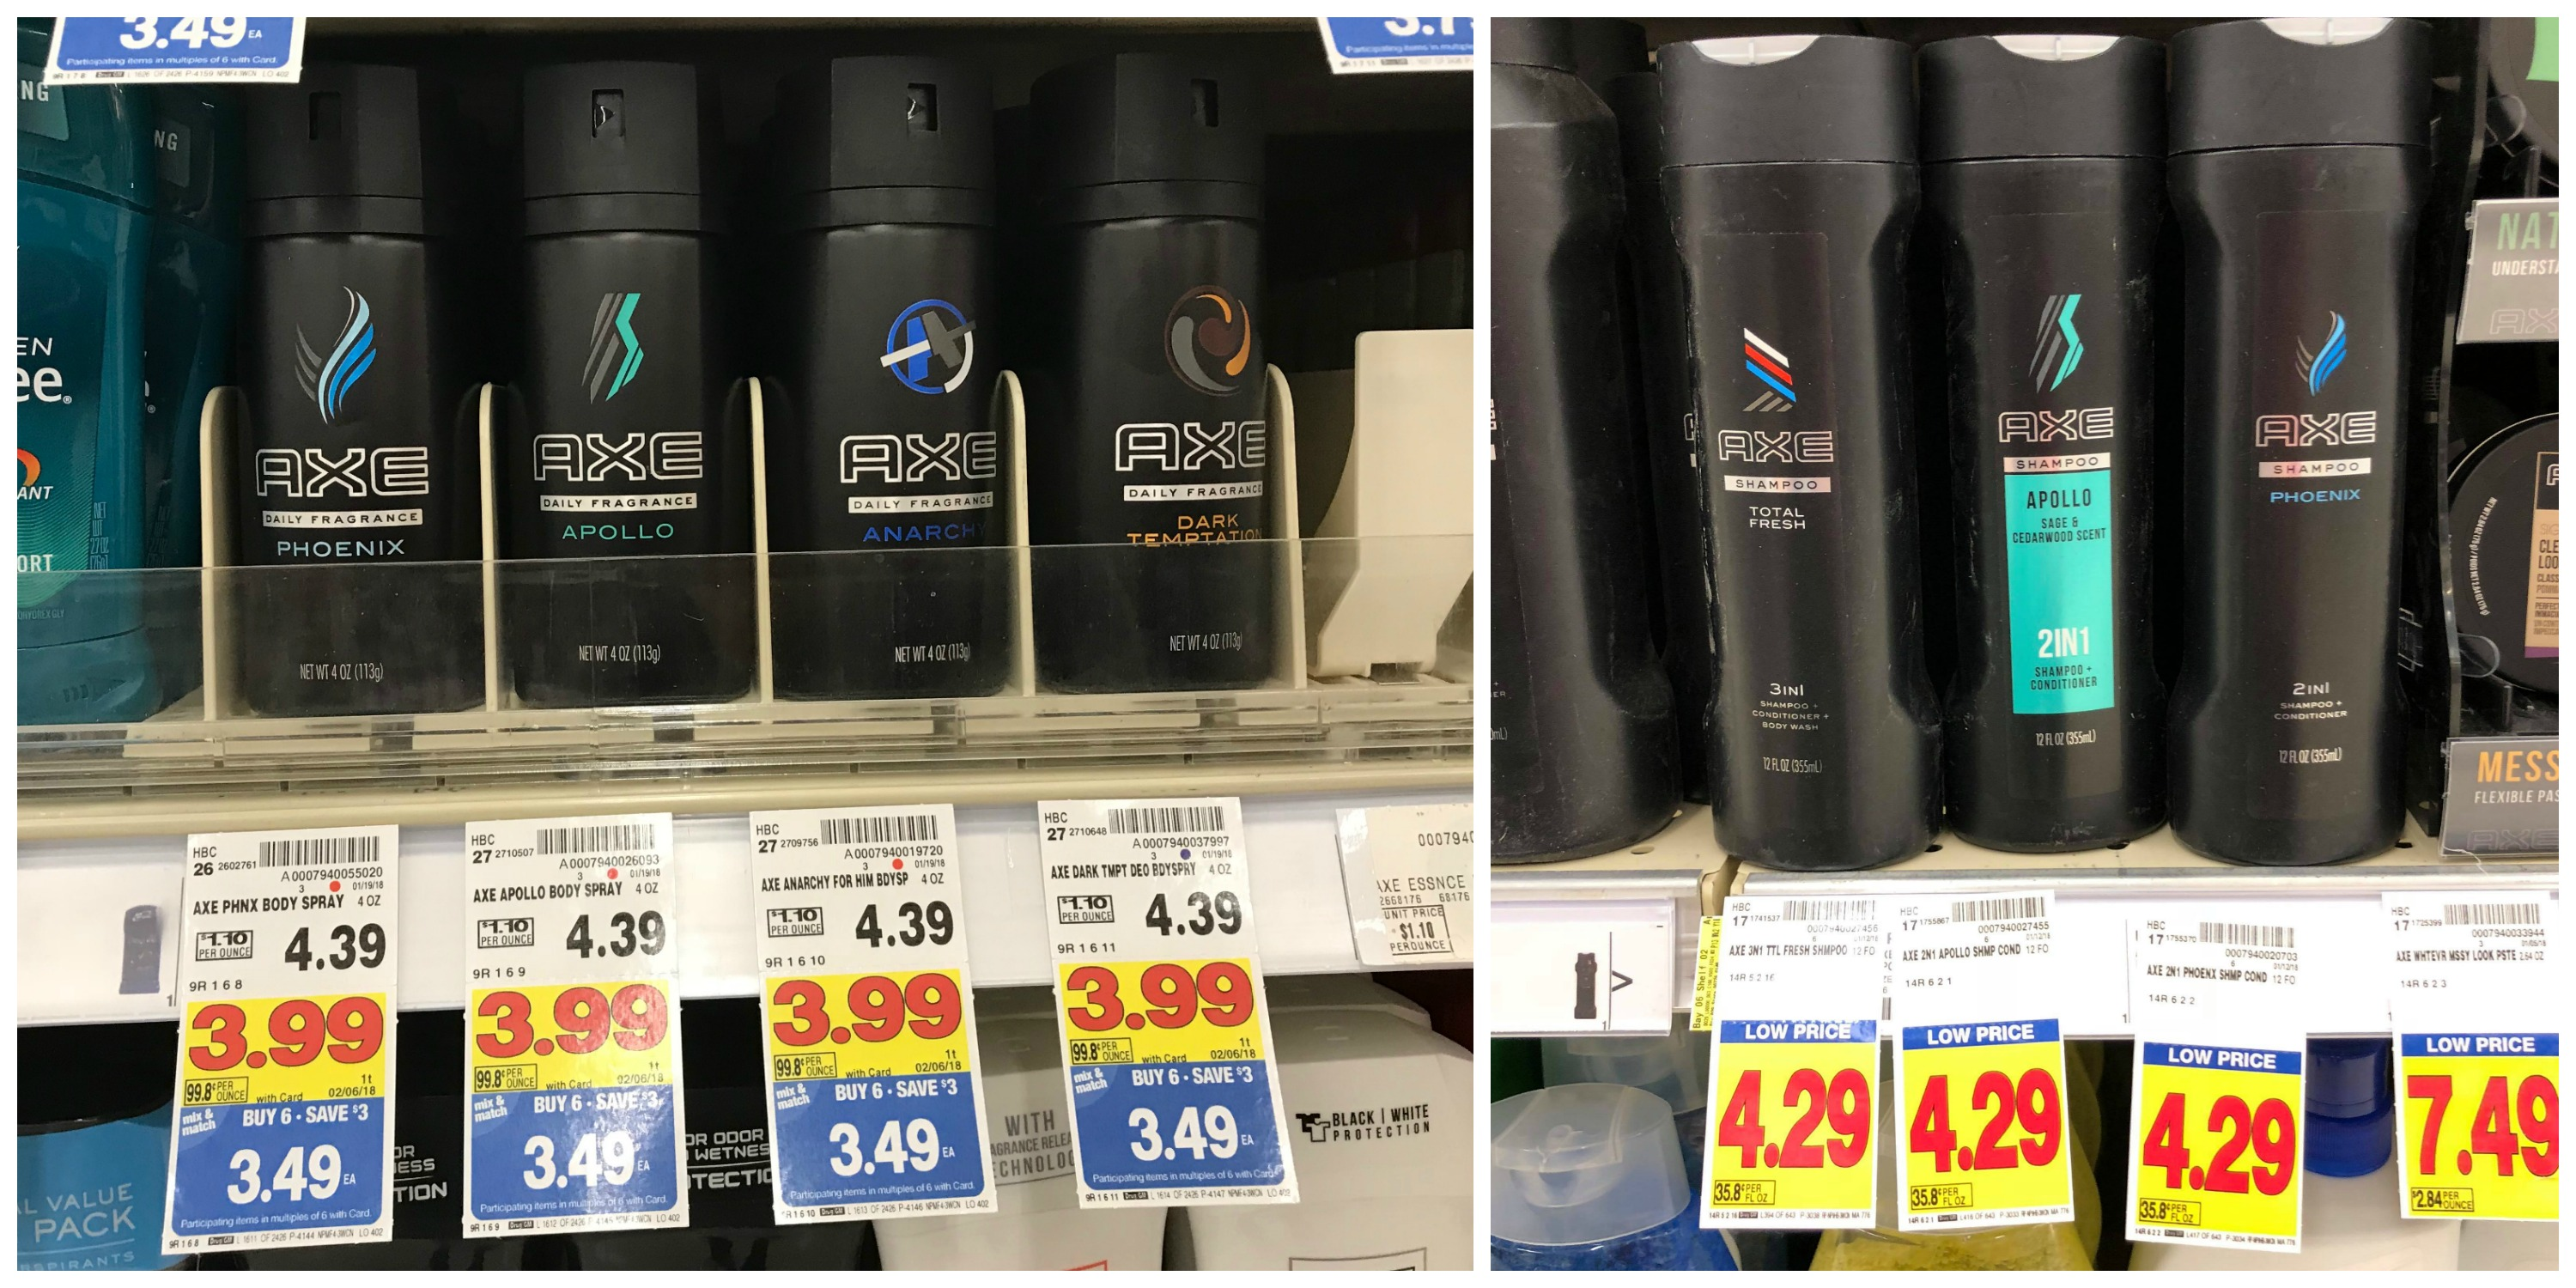 Axe body wash coupons august 2018